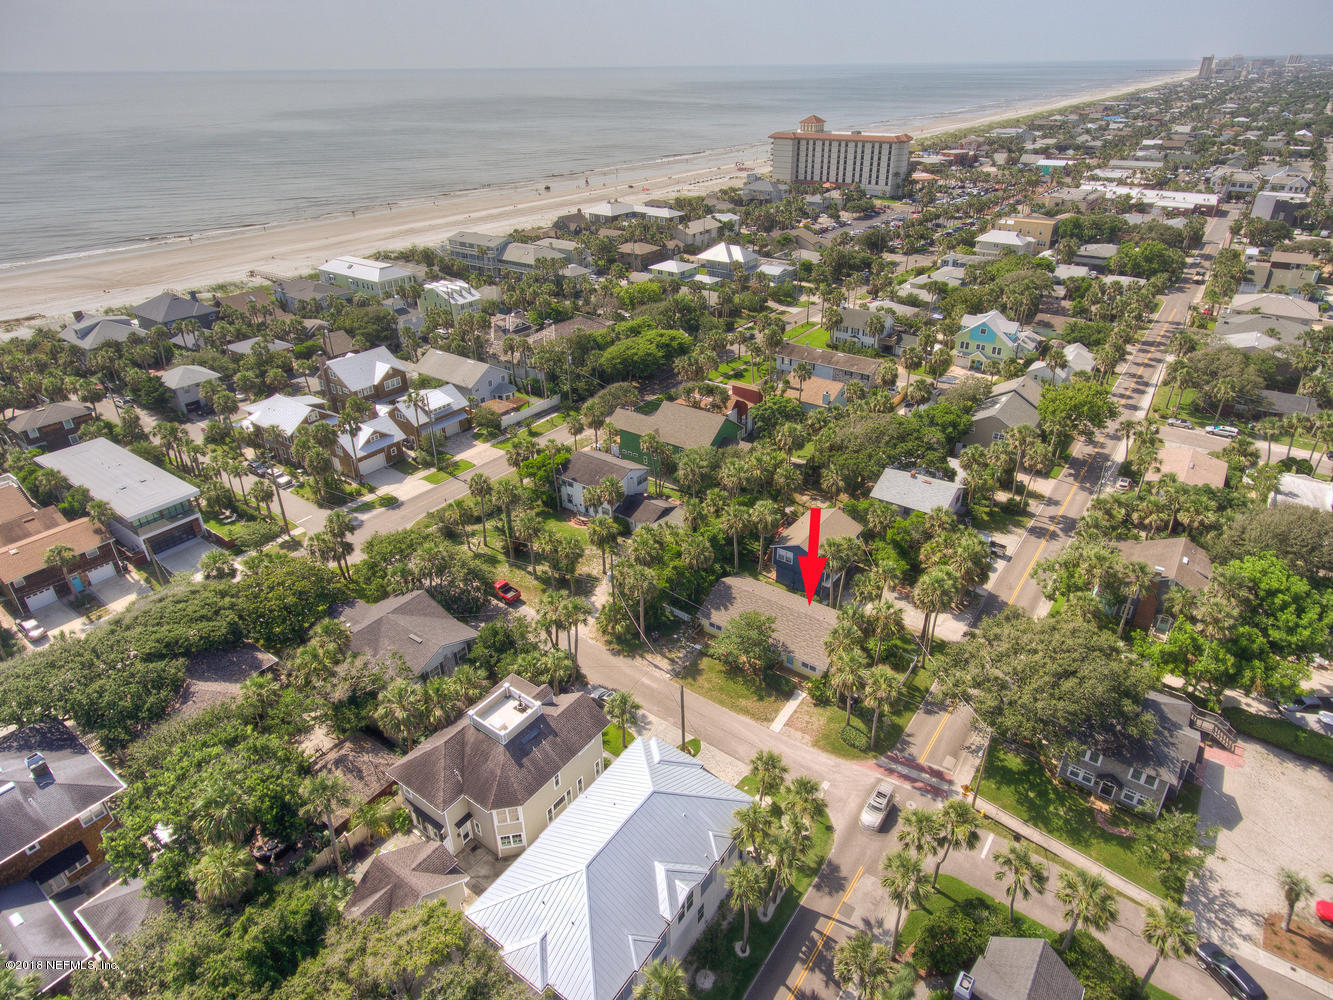 272 3RD, ATLANTIC BEACH, FLORIDA 32233, 2 Bedrooms Bedrooms, ,2 BathroomsBathrooms,Residential - single family,For sale,3RD,943231